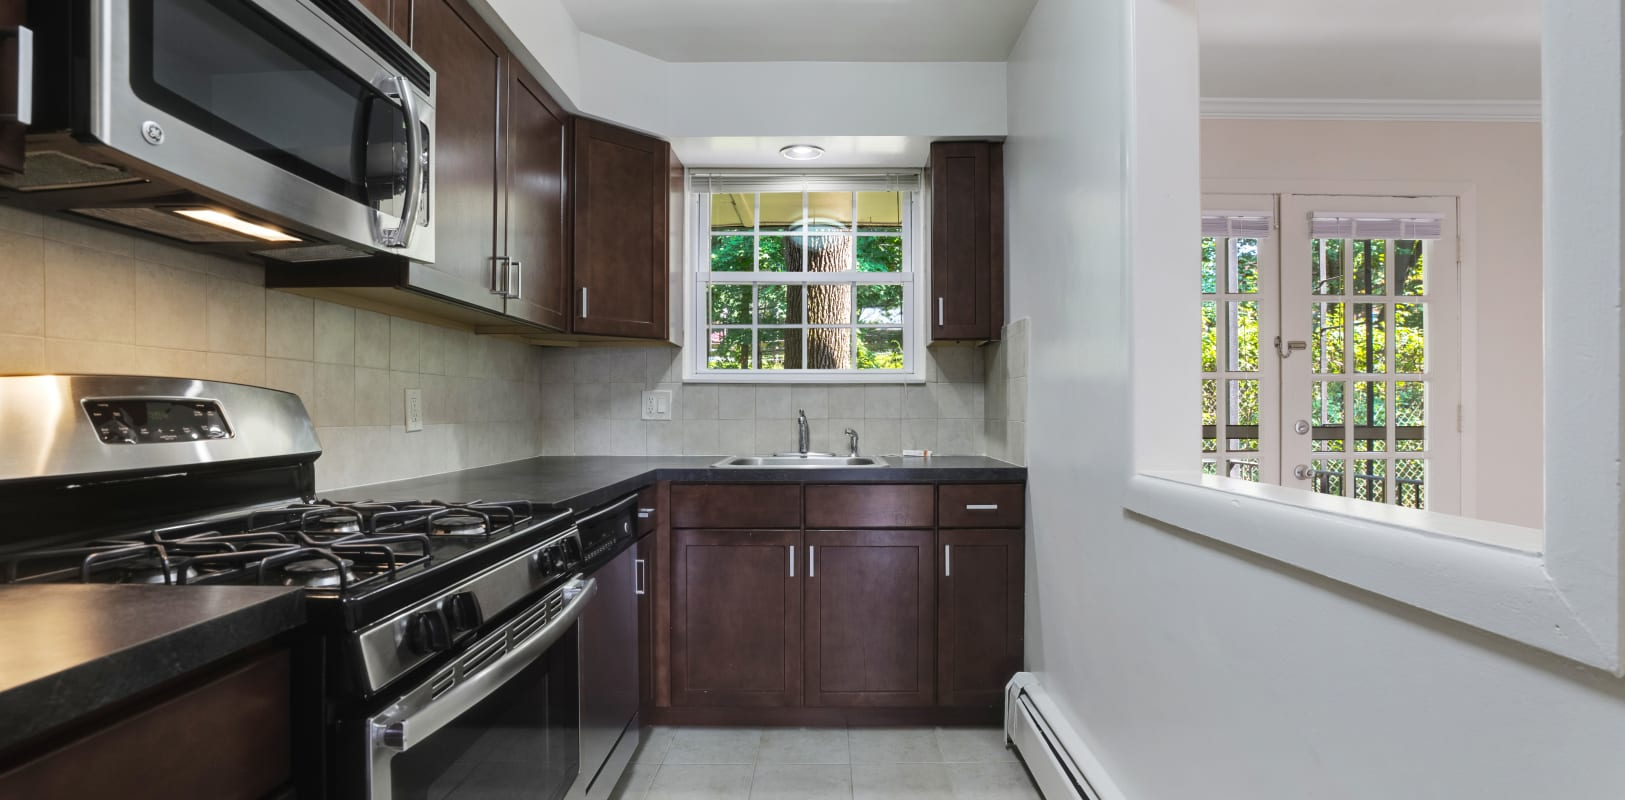 Kitchen with dark wood cabinets and nice black and silver appliances at Parkway East Apartments in Caldwell, New Jersey